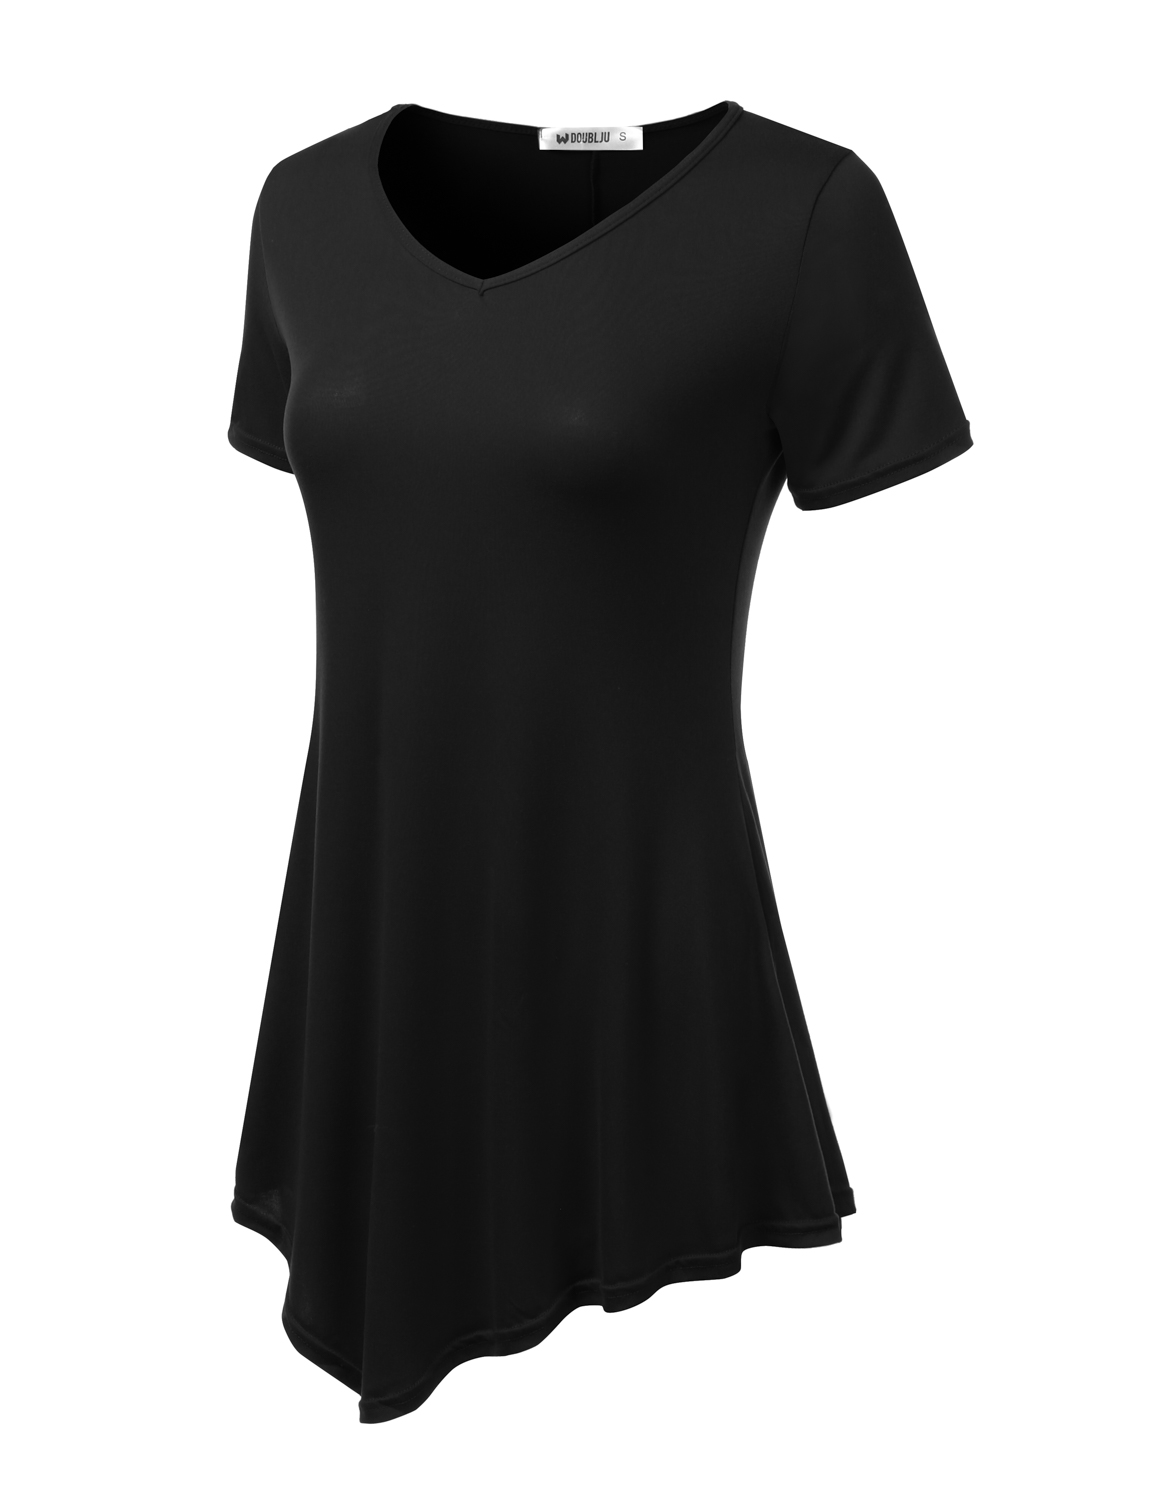 Doublju - Doublju Women s Short Sleeve Swing Tunic Tops for Leggings Flowy  Basic T Shirt Plus Size BLACK S - Walmart.com